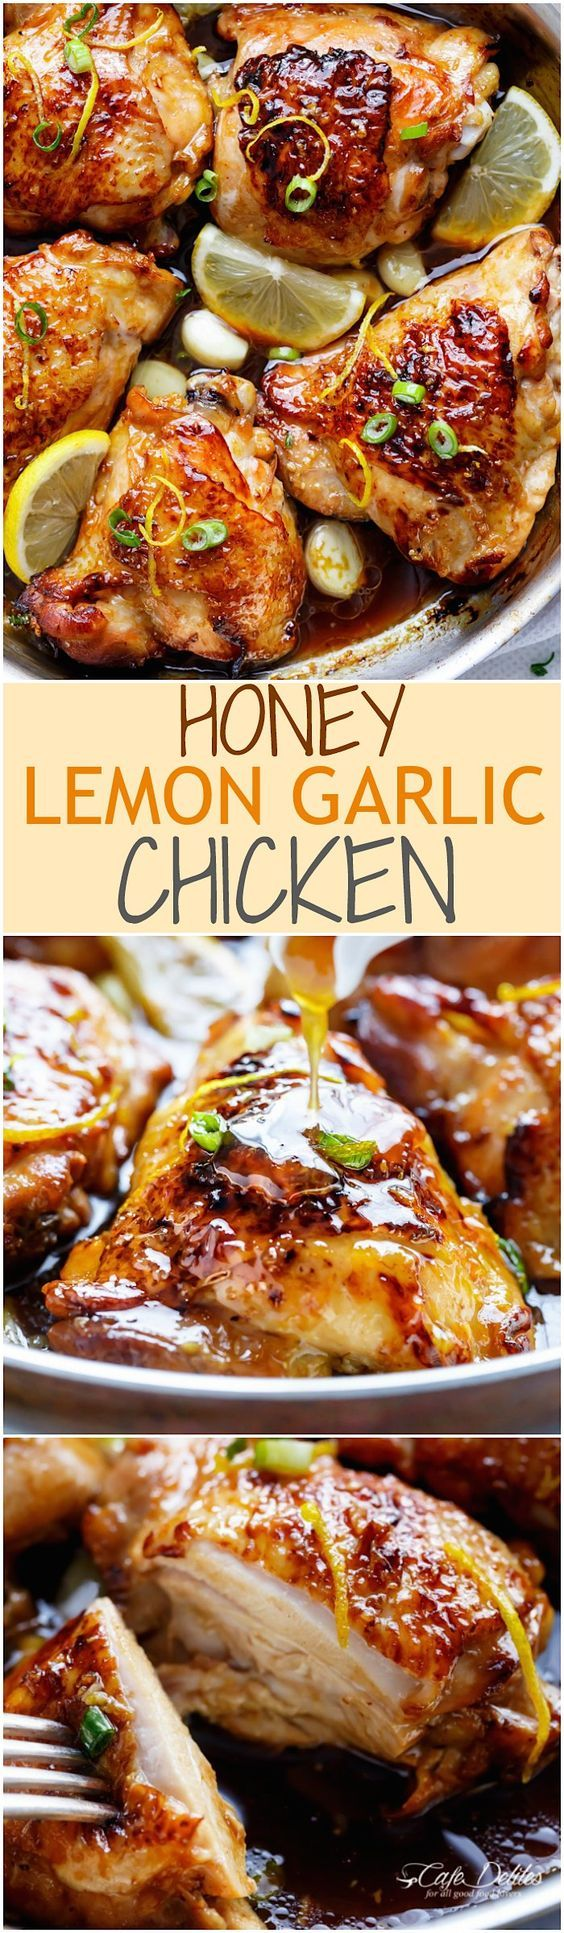 Spectacular Juicy Honey Lemon Garlic Chicken with a crispy skin and a sweet sticky sauce with